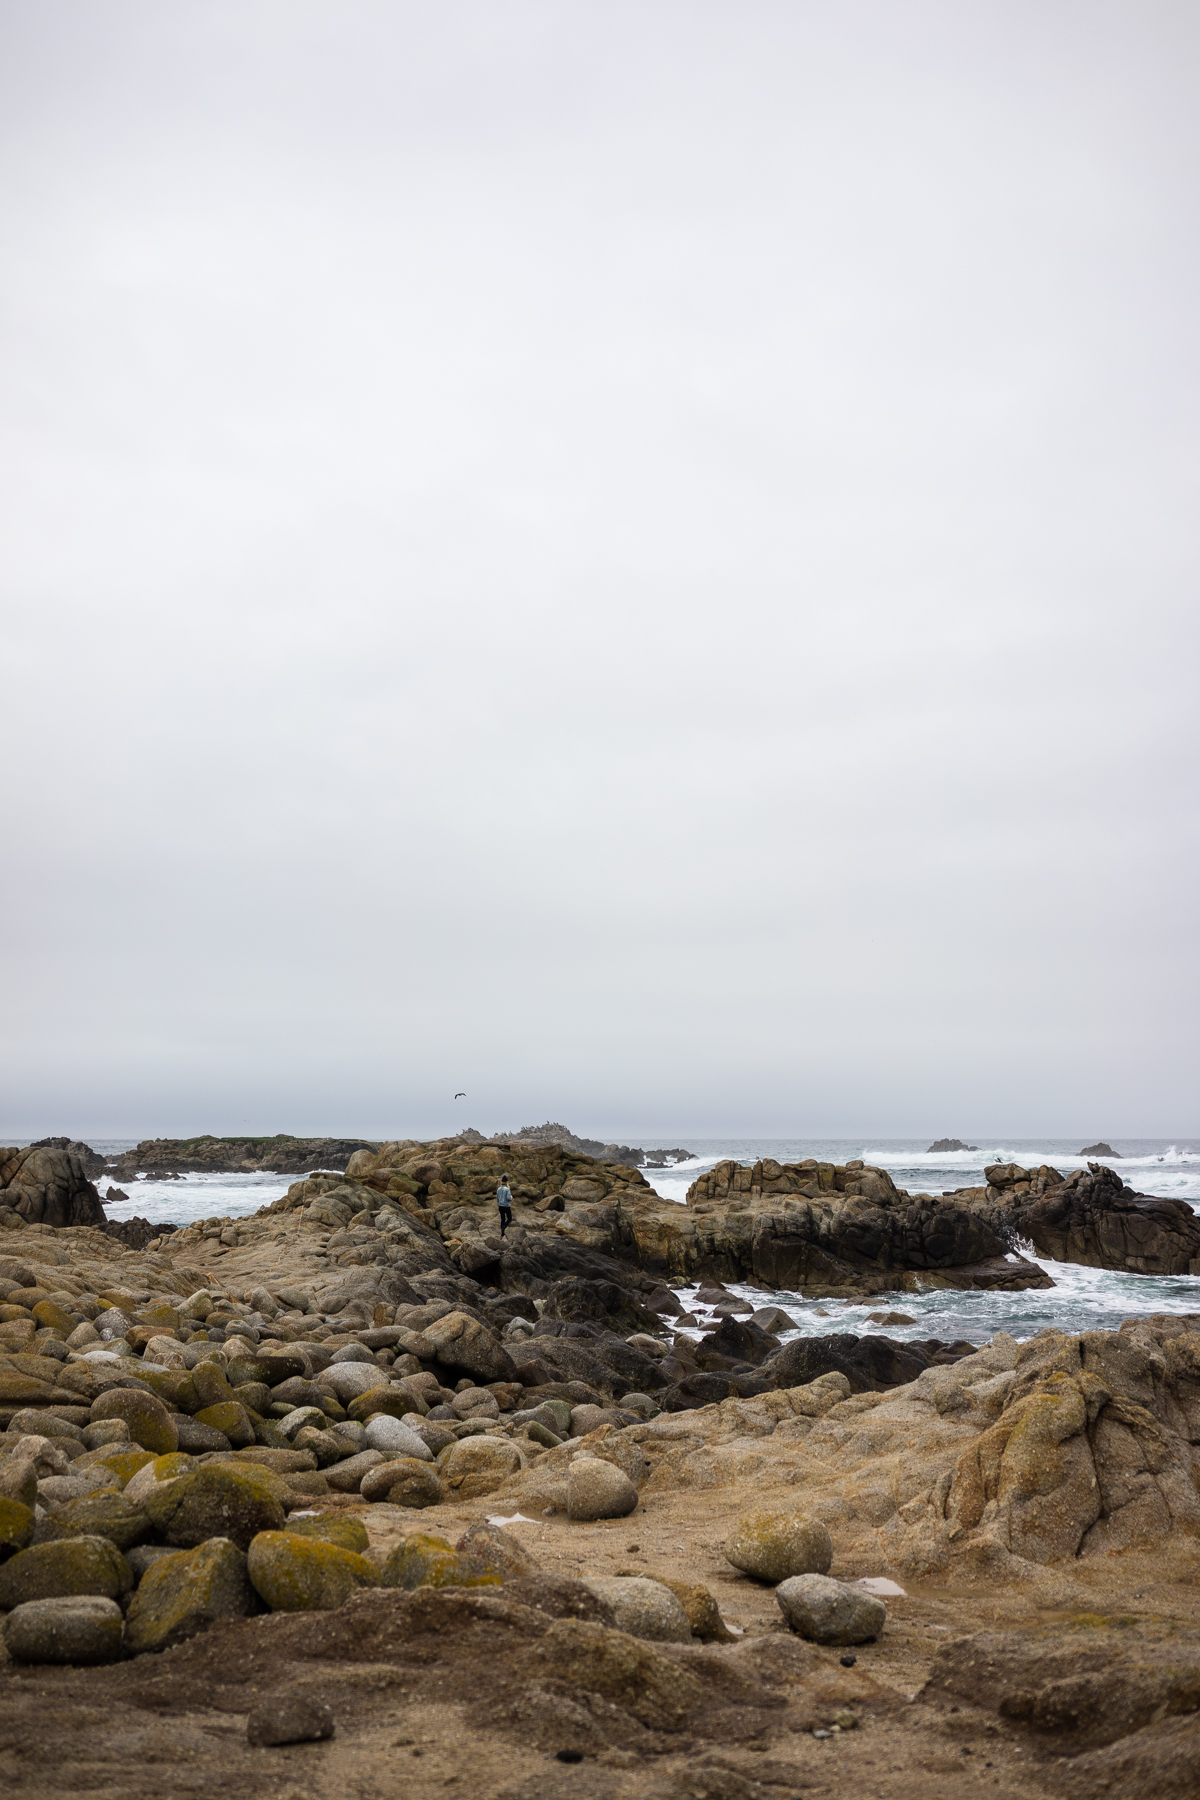 Cambria, San Fransisco, Monterey, Cayucos, Morro Bay, and Venice